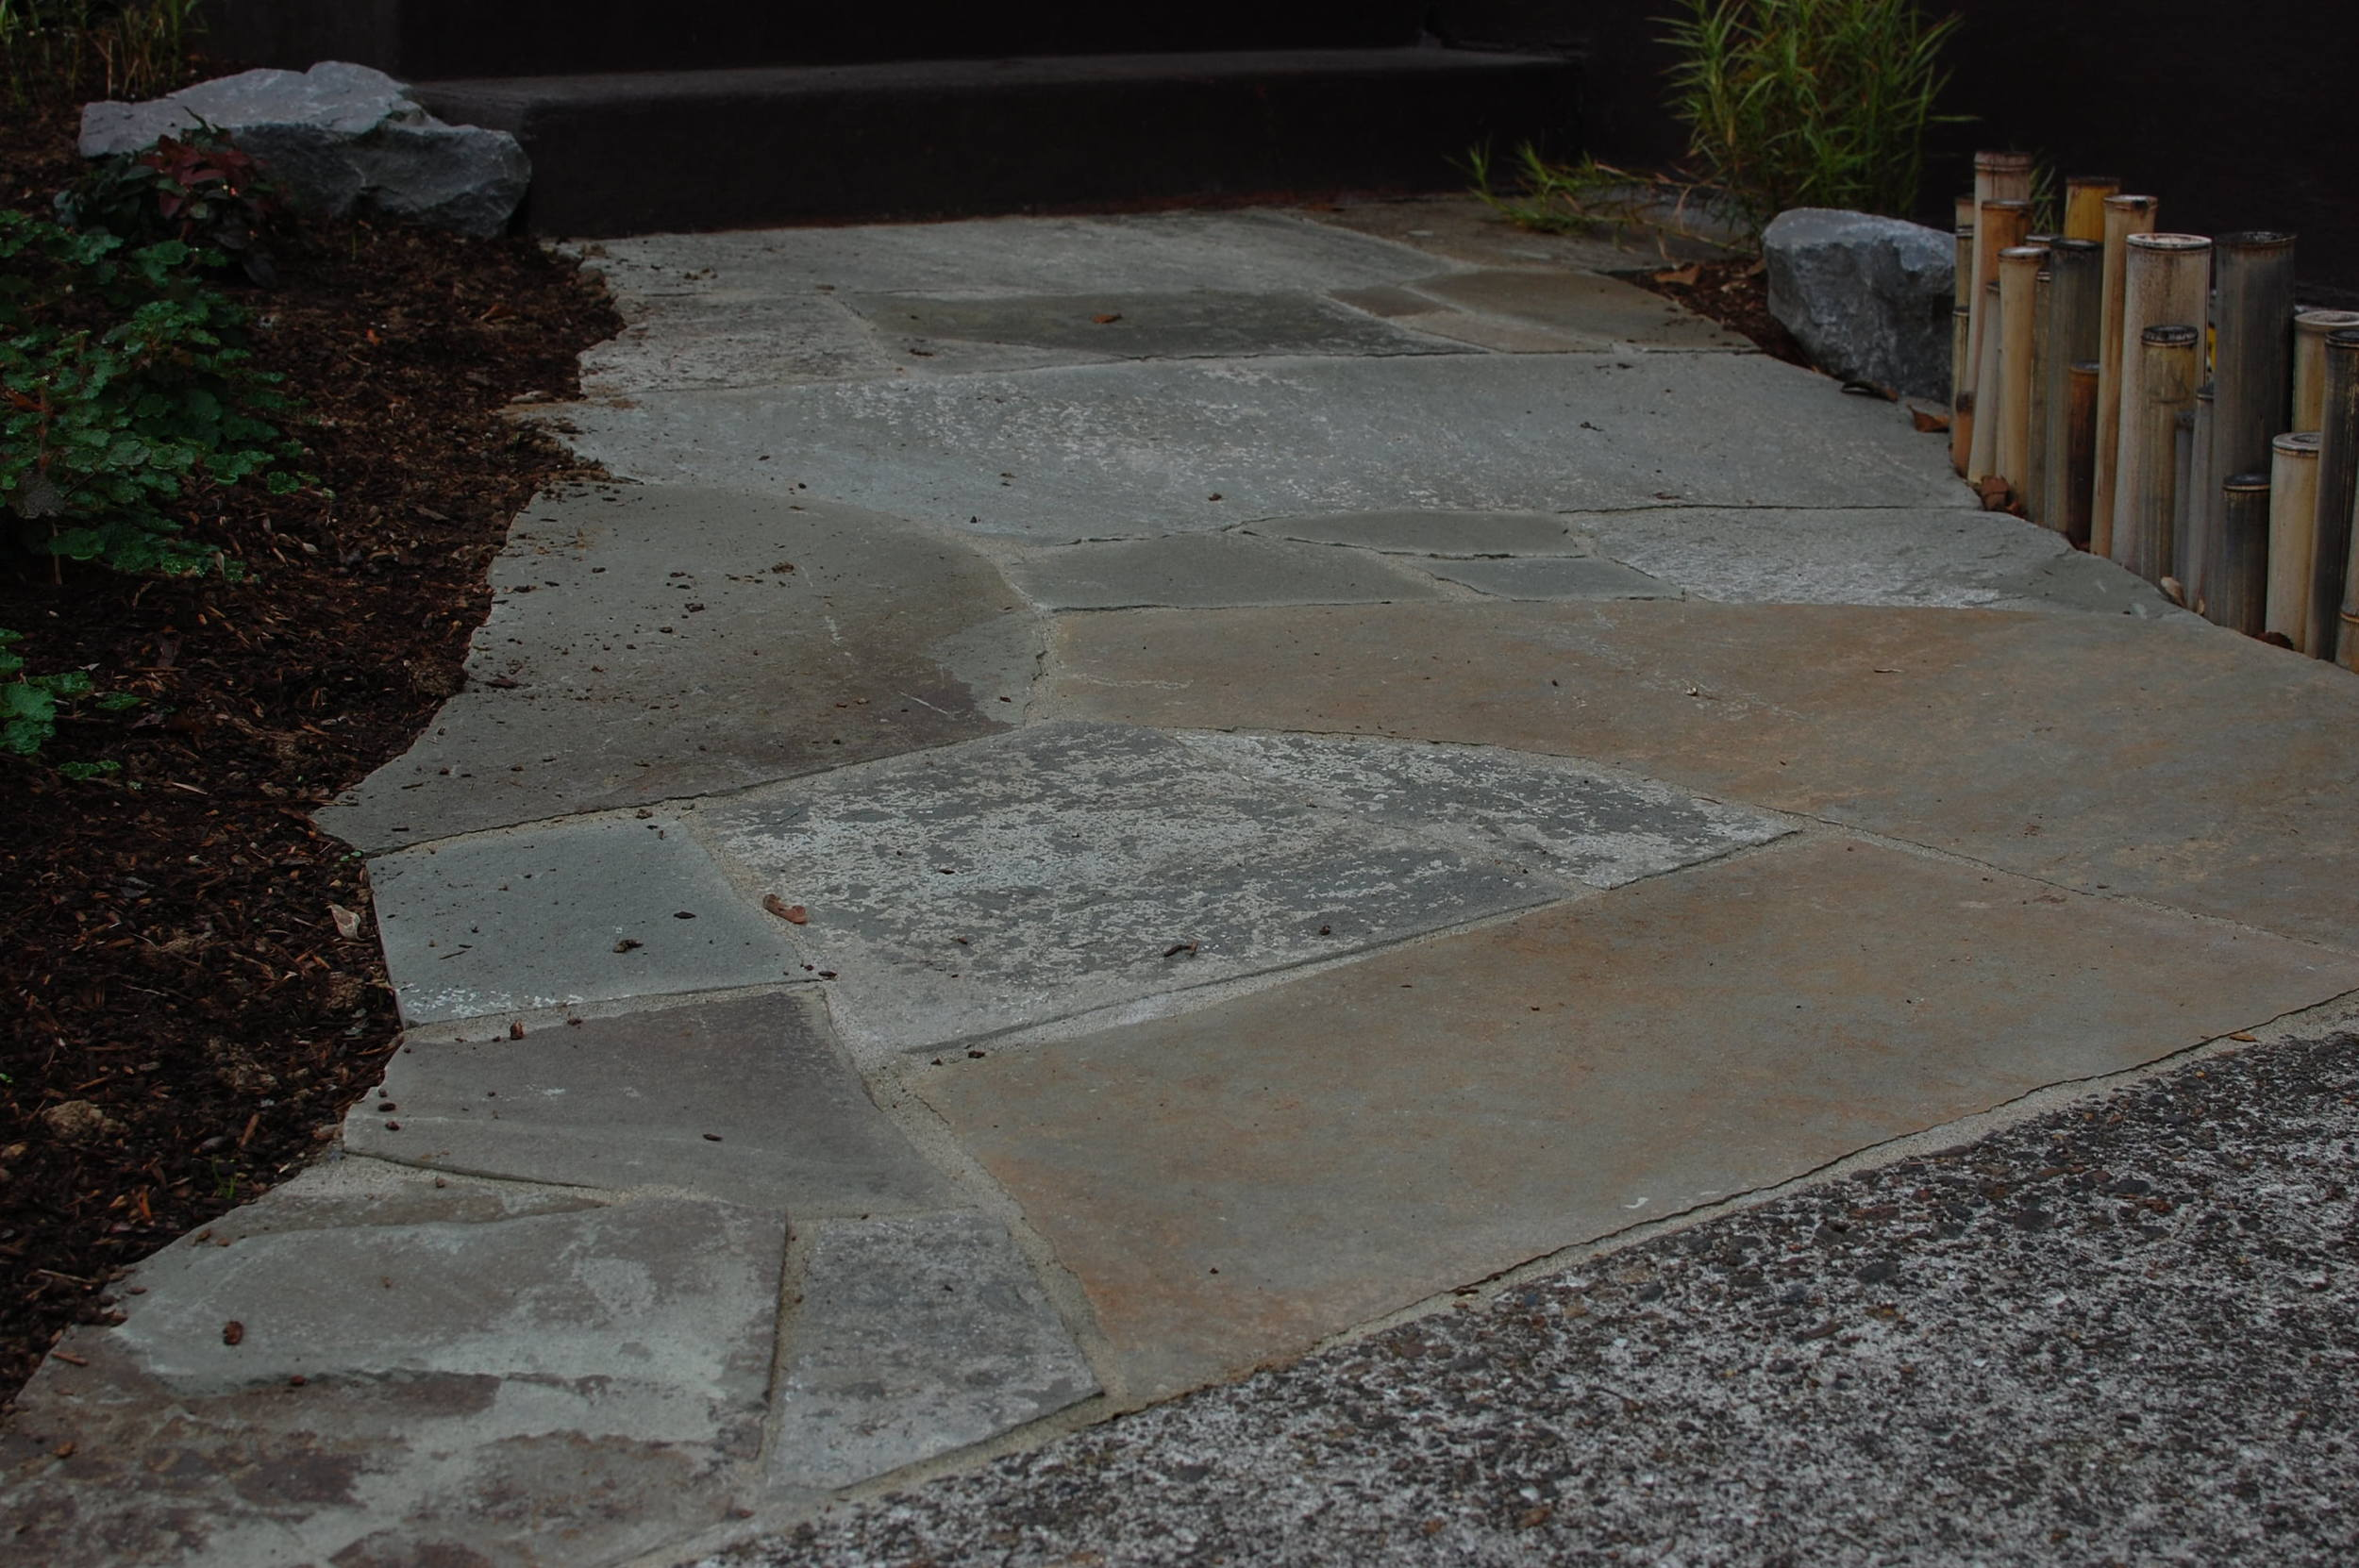 Rustic bluestone path set in sand.